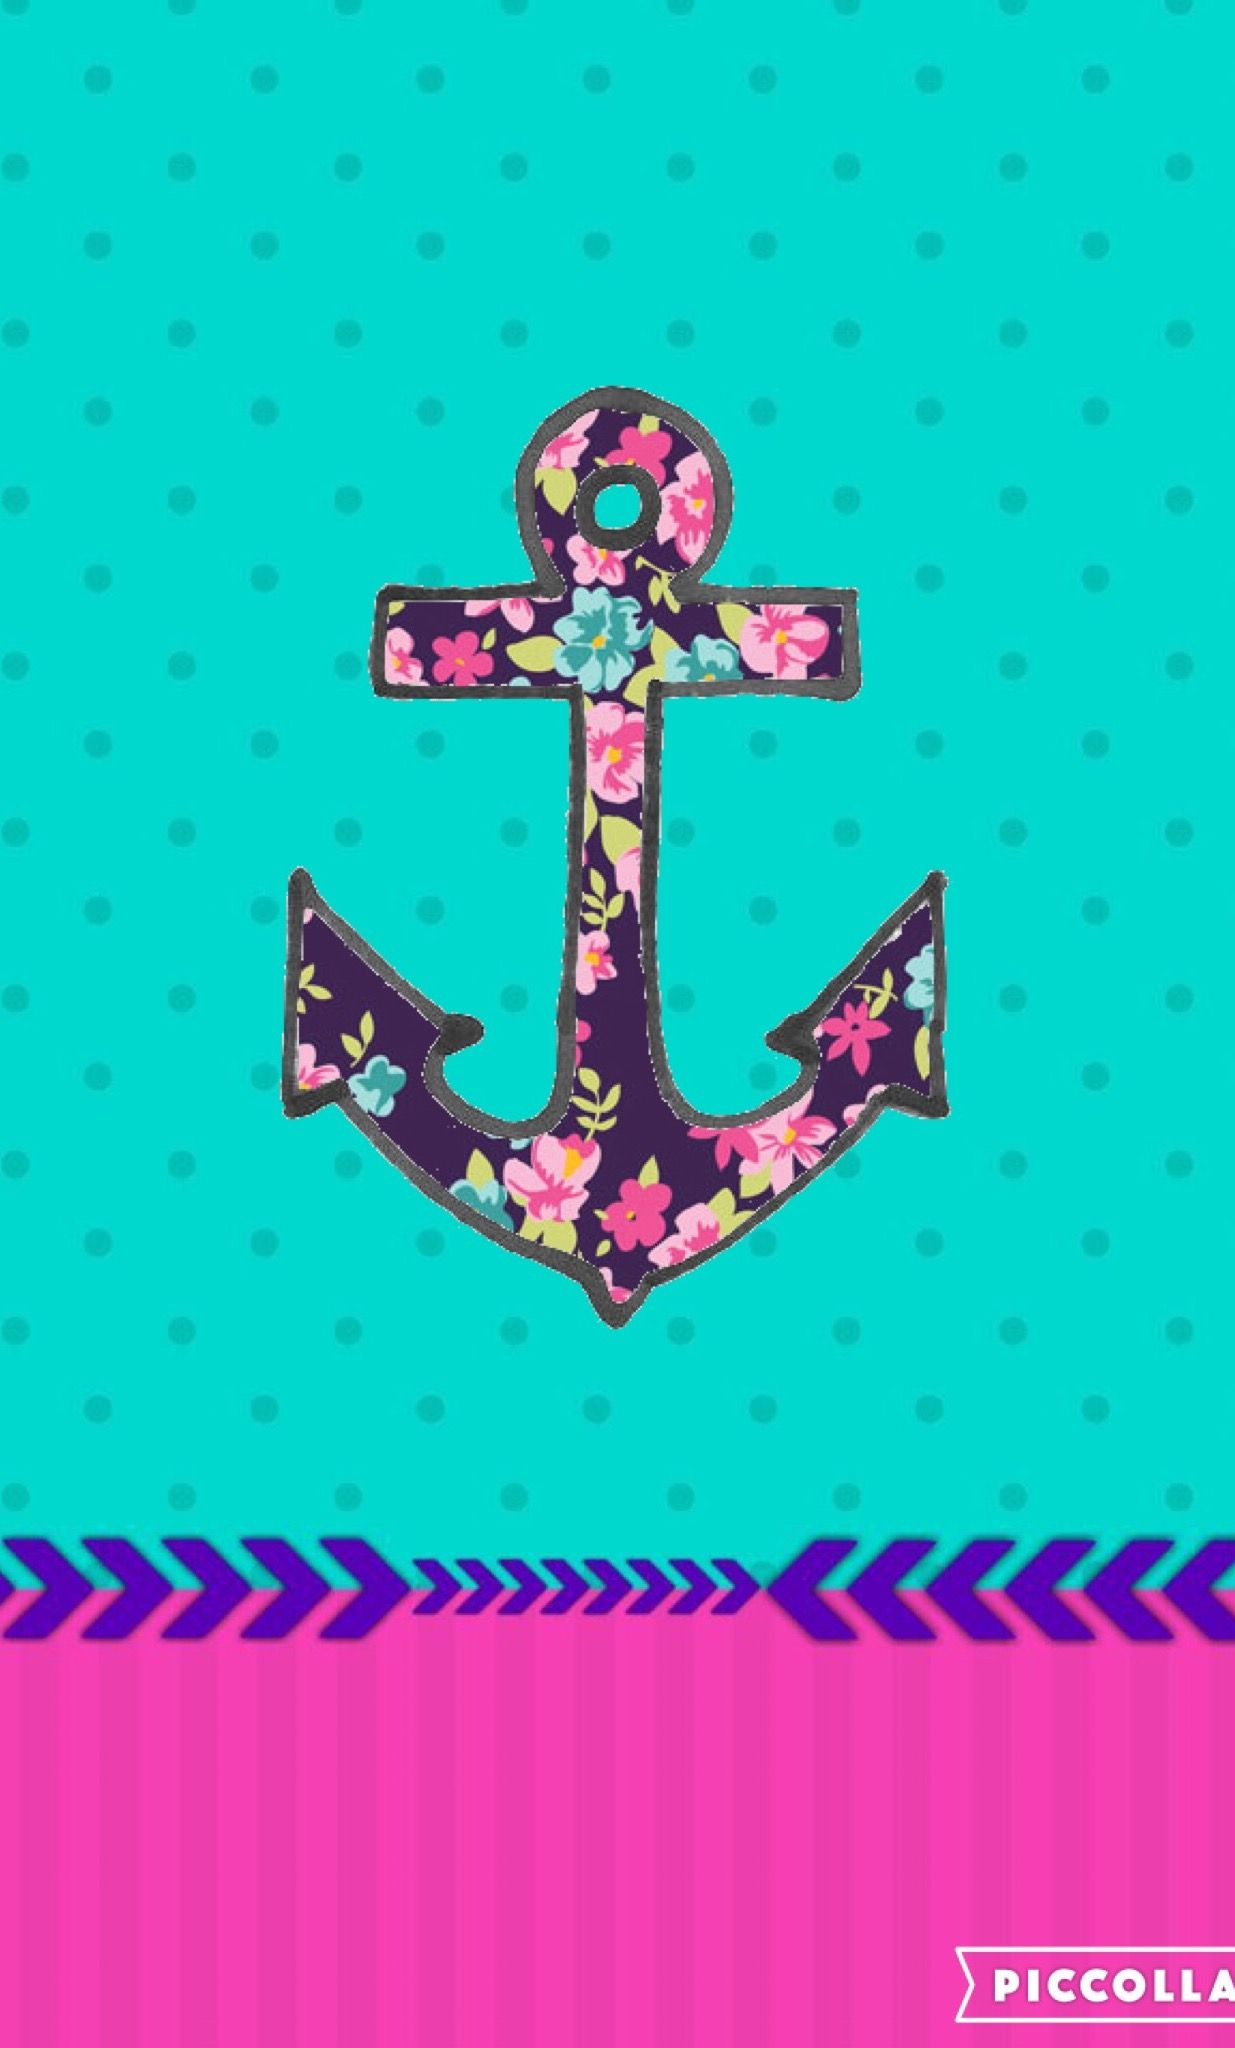 anchor iphone wallpaper anchor girly iphone wallpapers create by me 10072